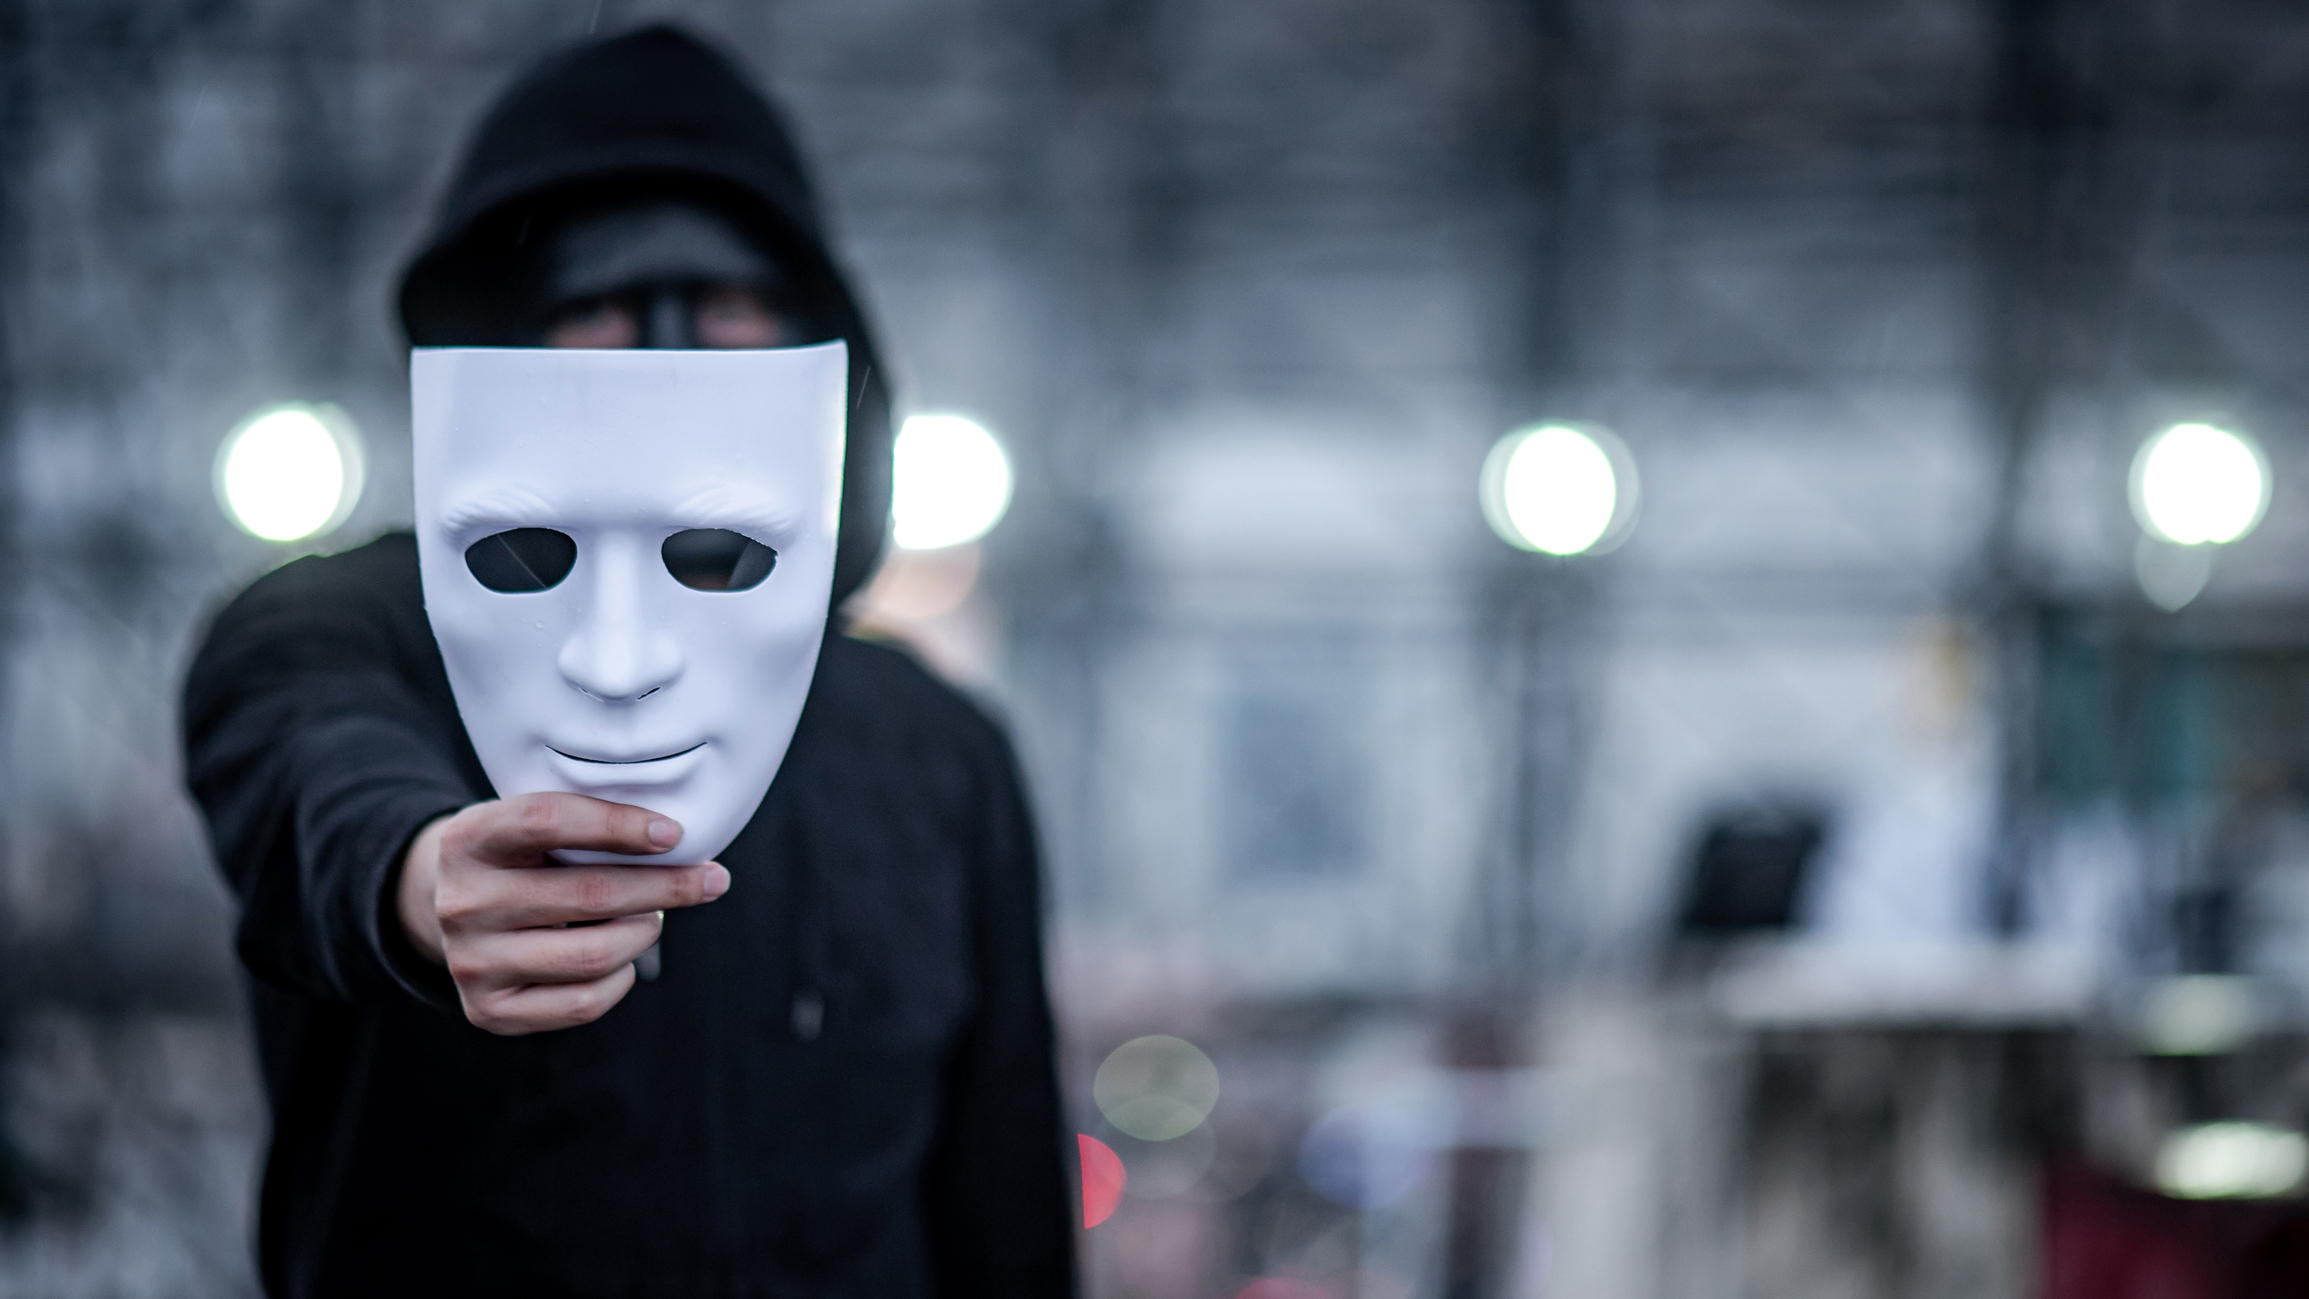 Mystery hoodie man with black mask holding white mask in his hand.